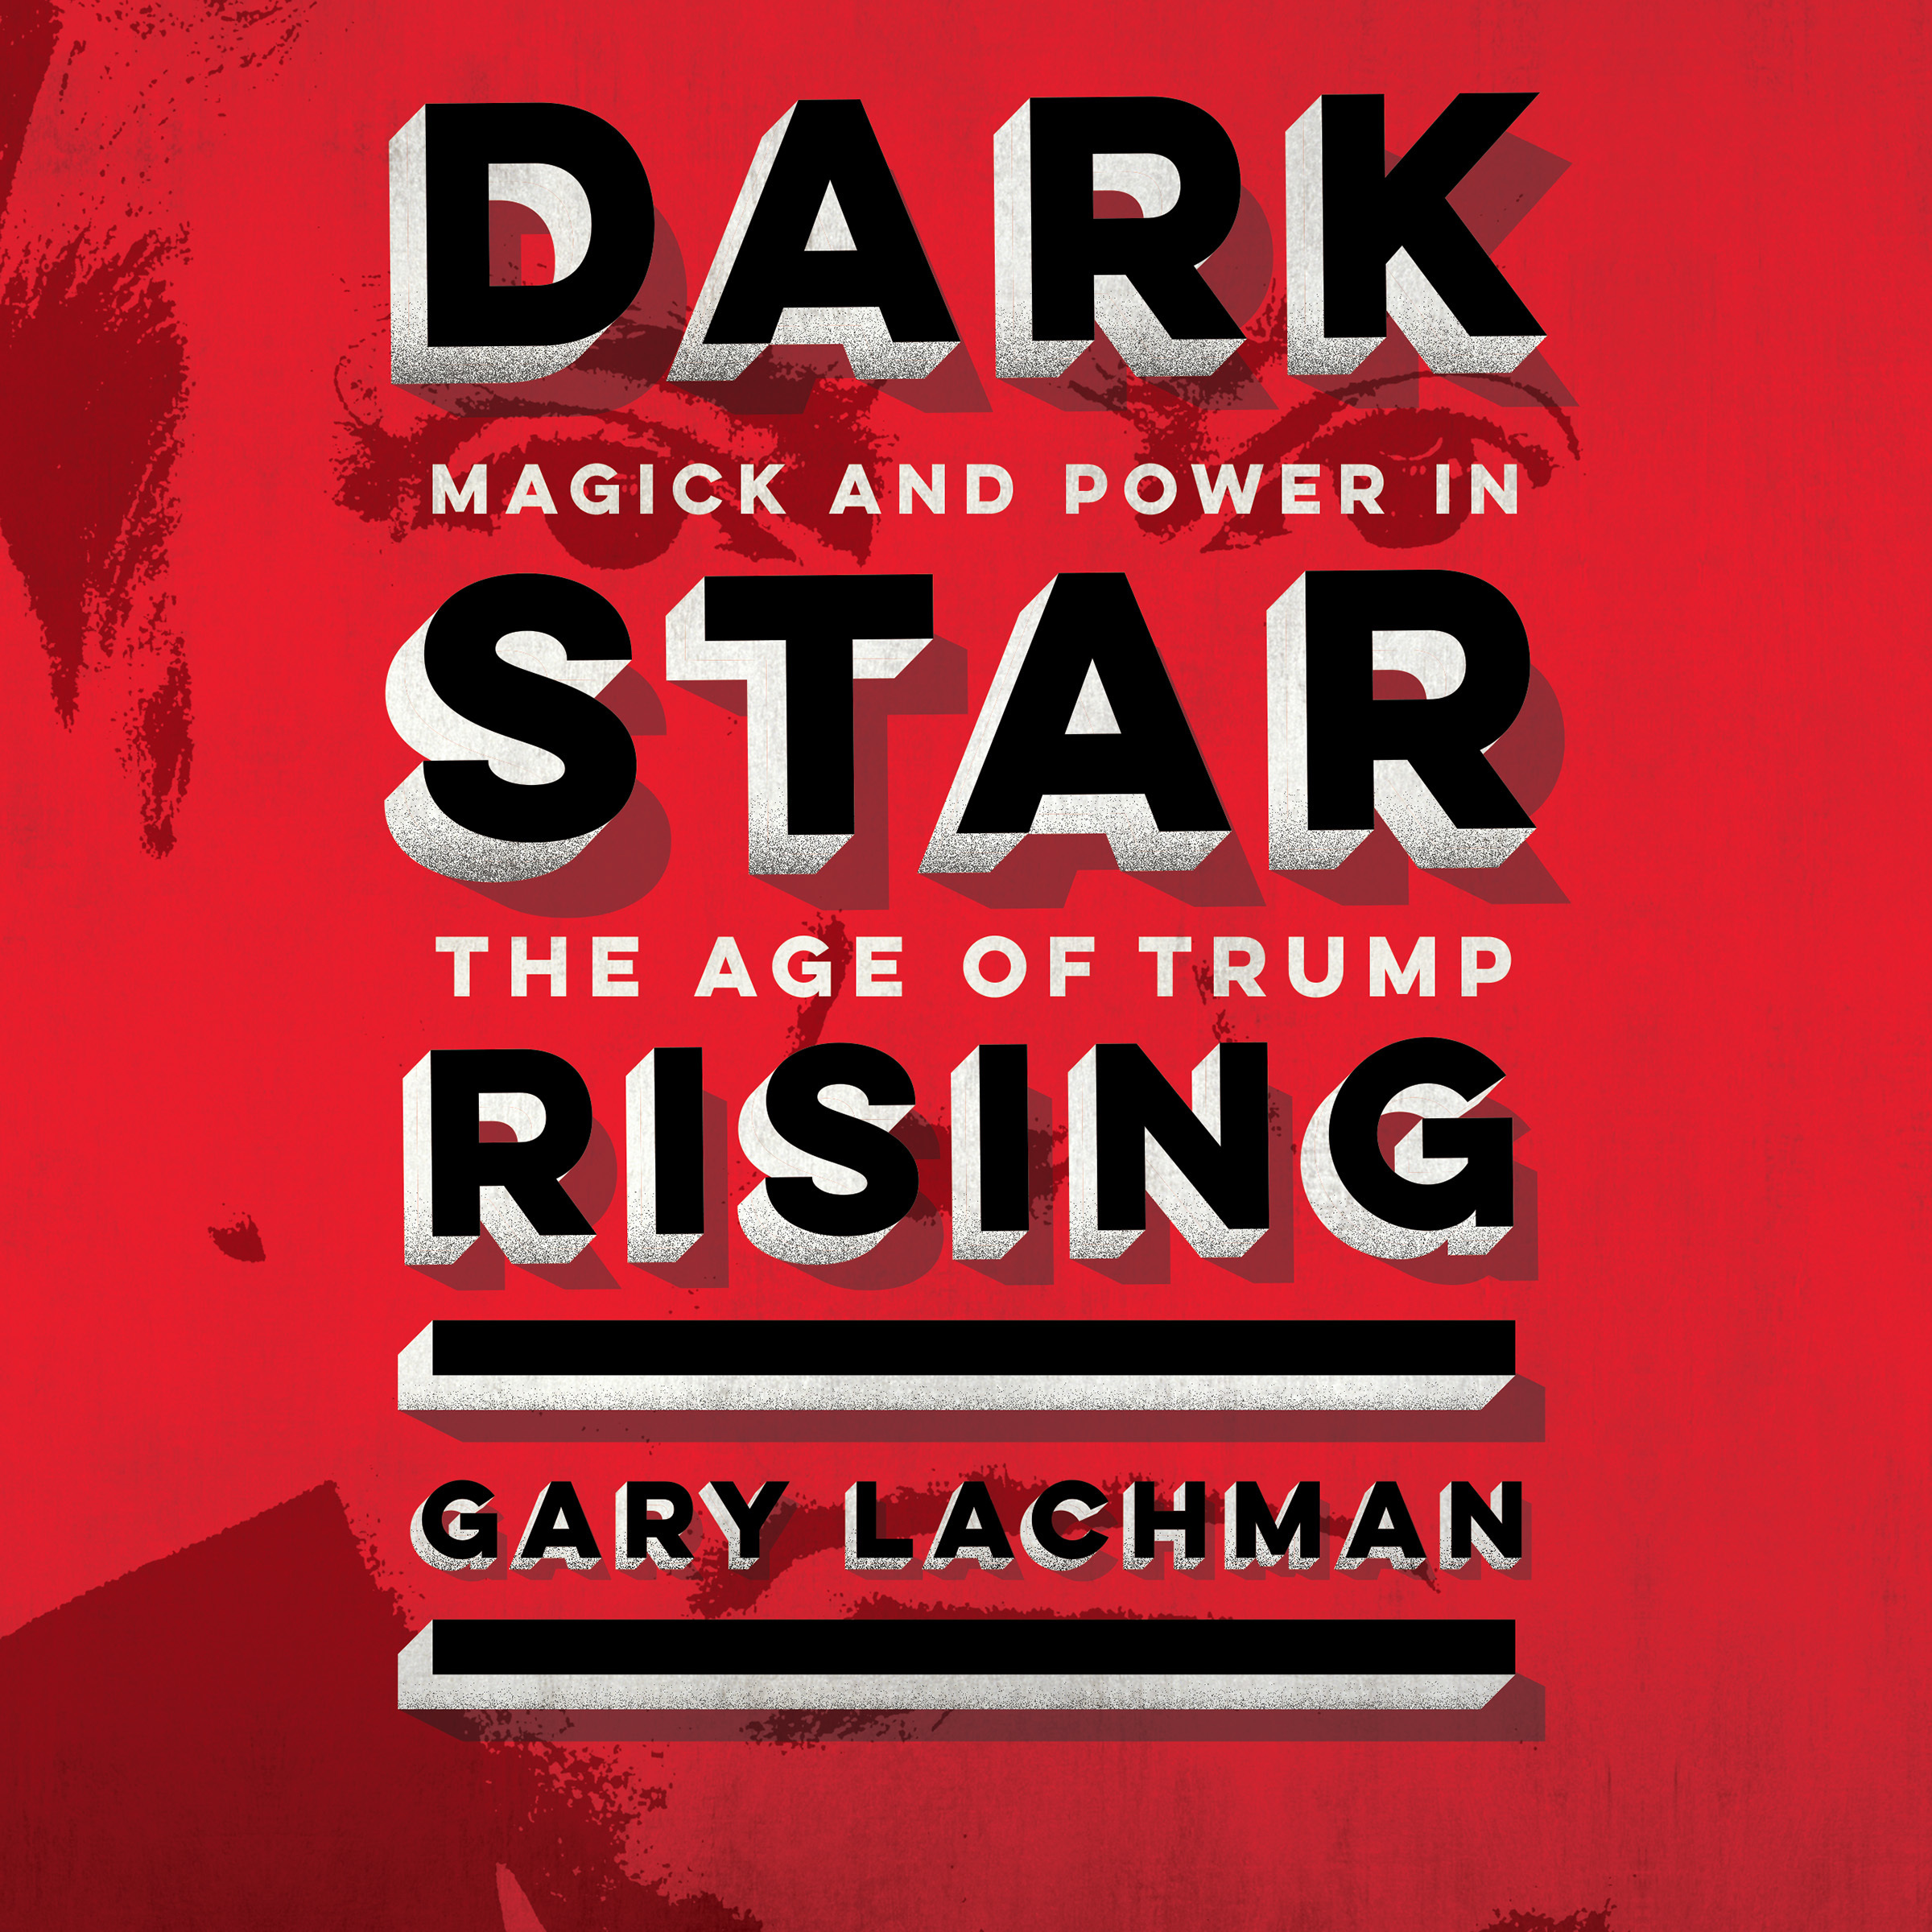 Printable Dark Star Rising: Magick and Power in the Age of Trump Audiobook Cover Art